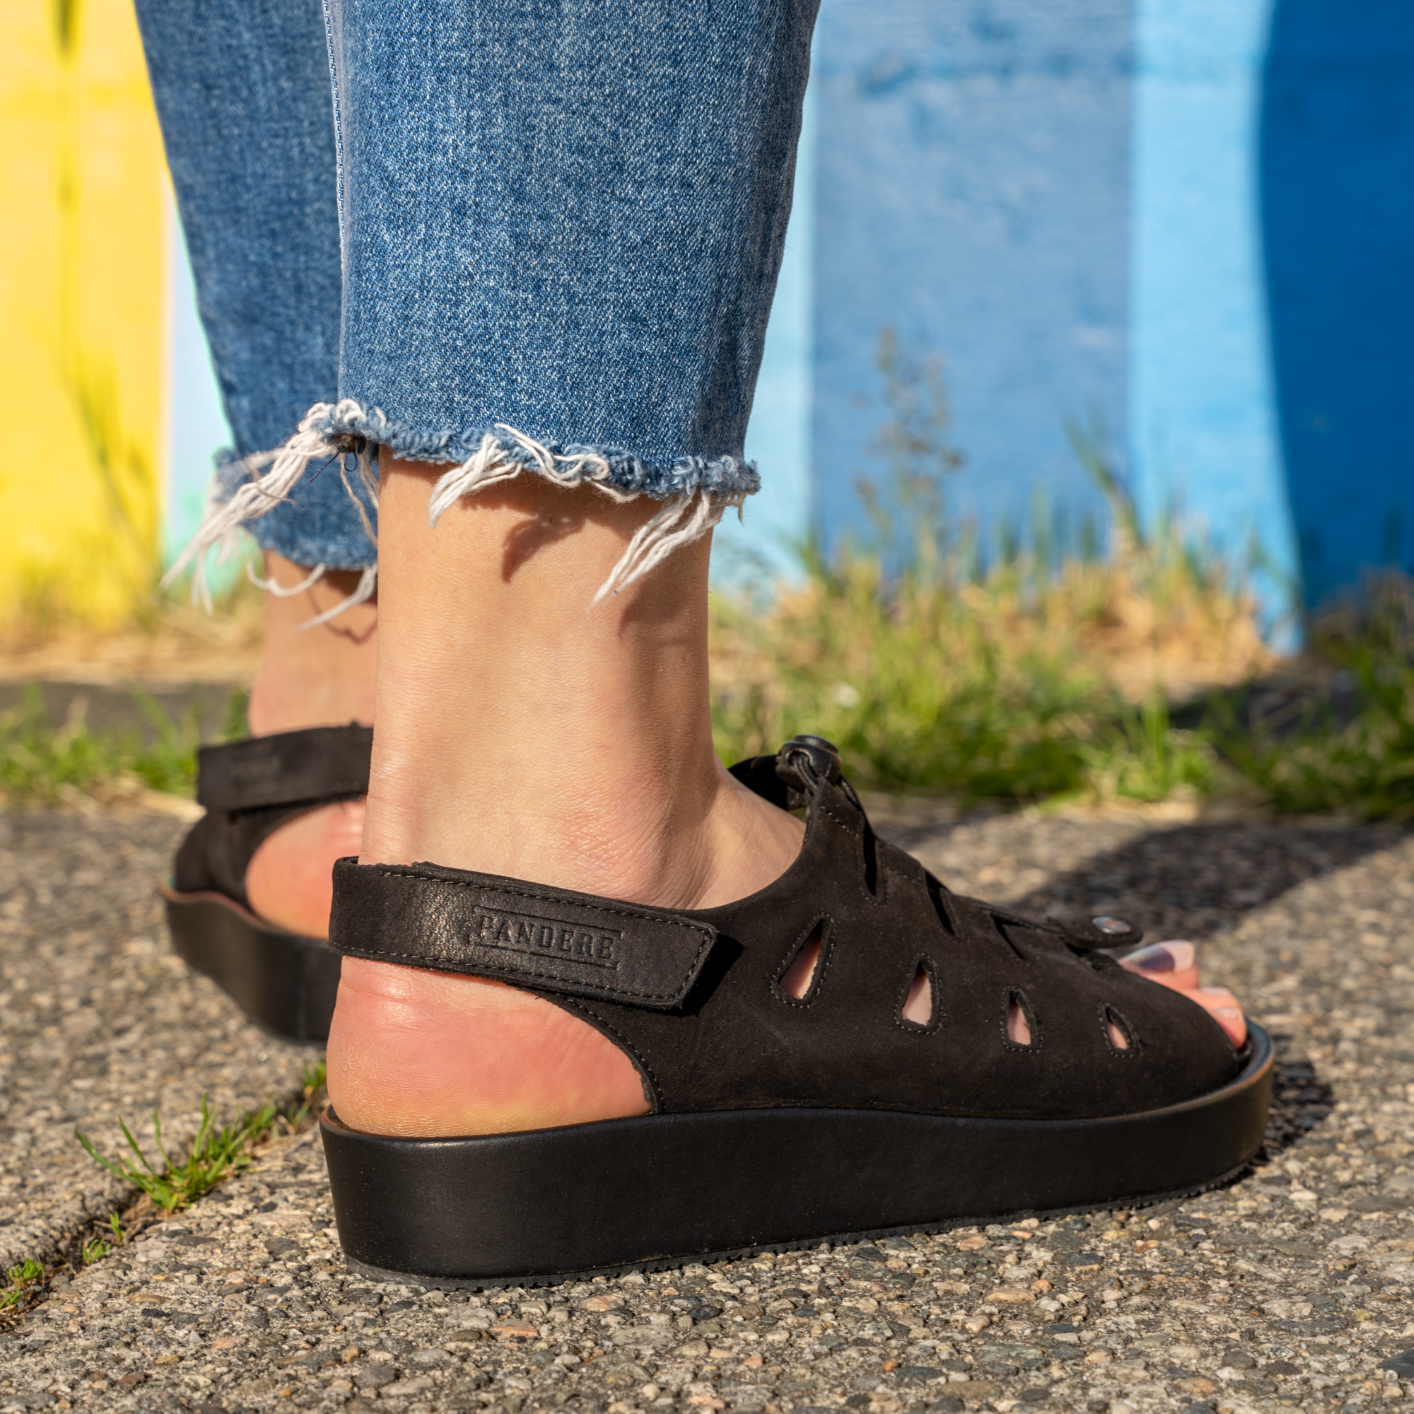 The Traveler Sandal